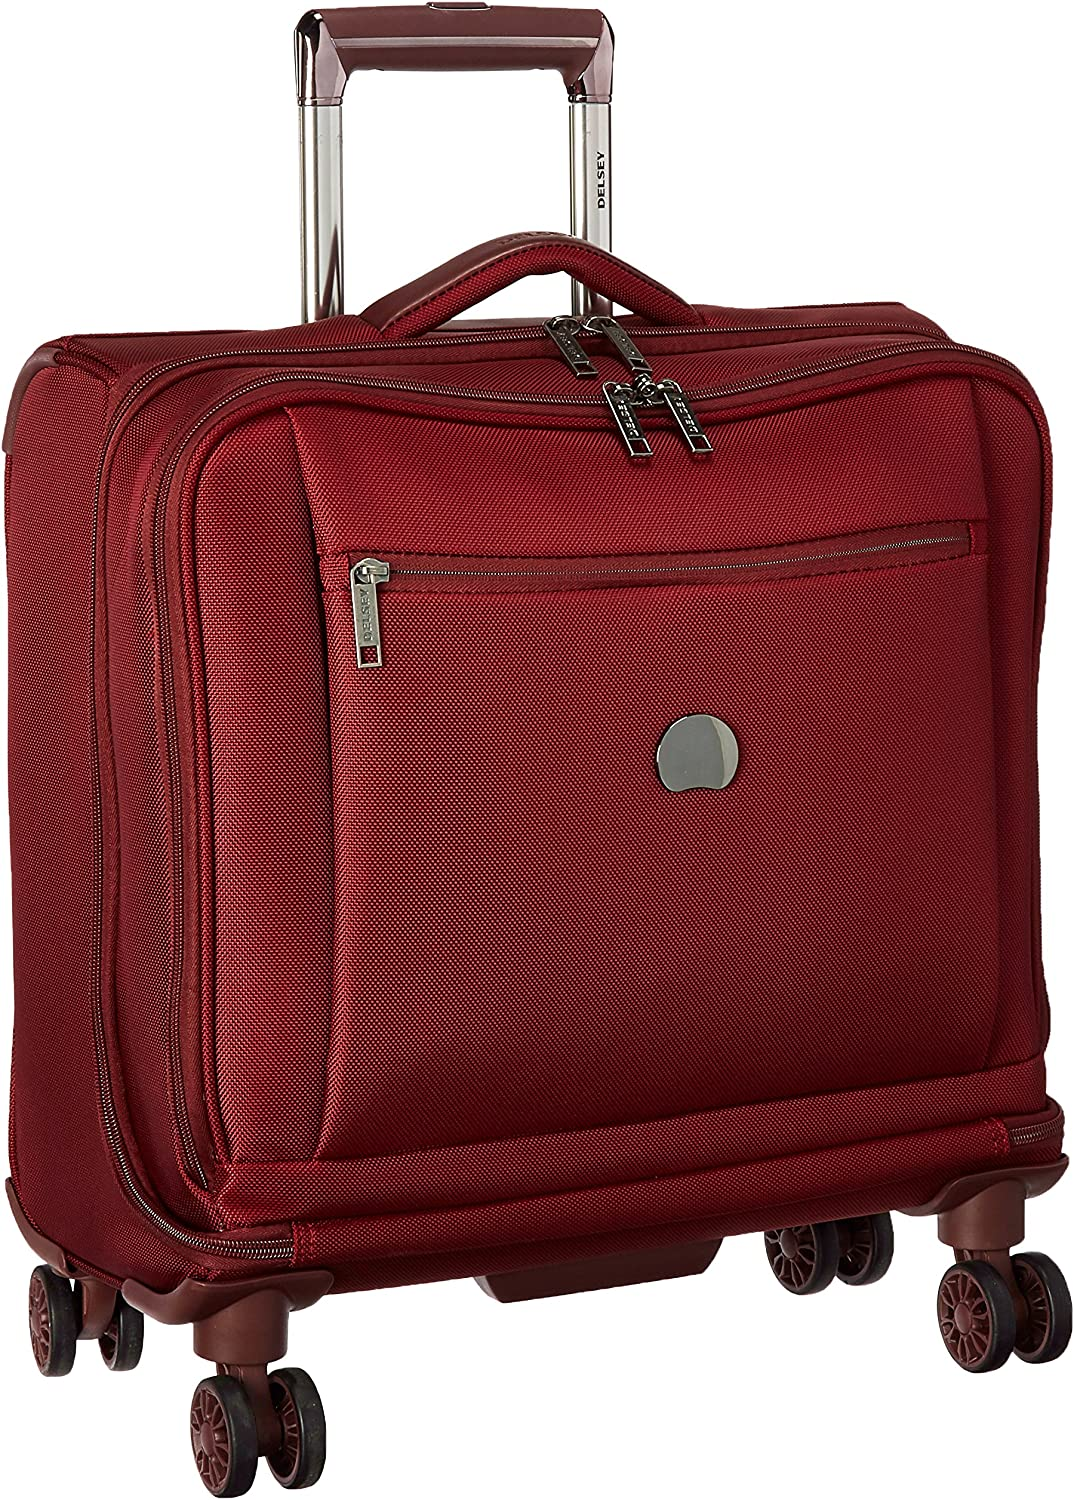 Delsey Luggage Montmartre Bordeaux Spinner Business Travel Tote